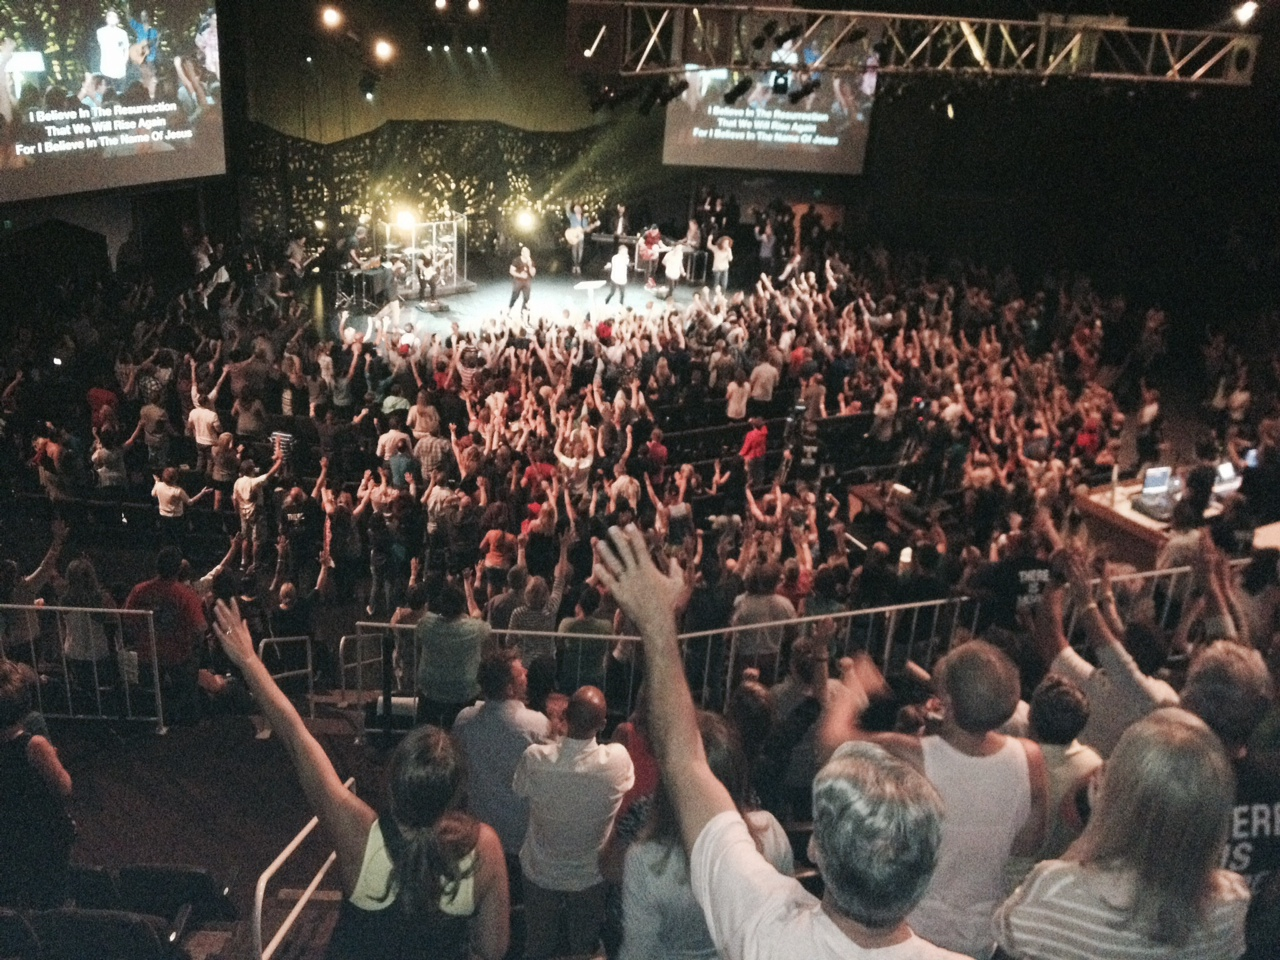 It was pretty awesome to see hundreds (thousands?) of hands raised in commitment to the Lord!